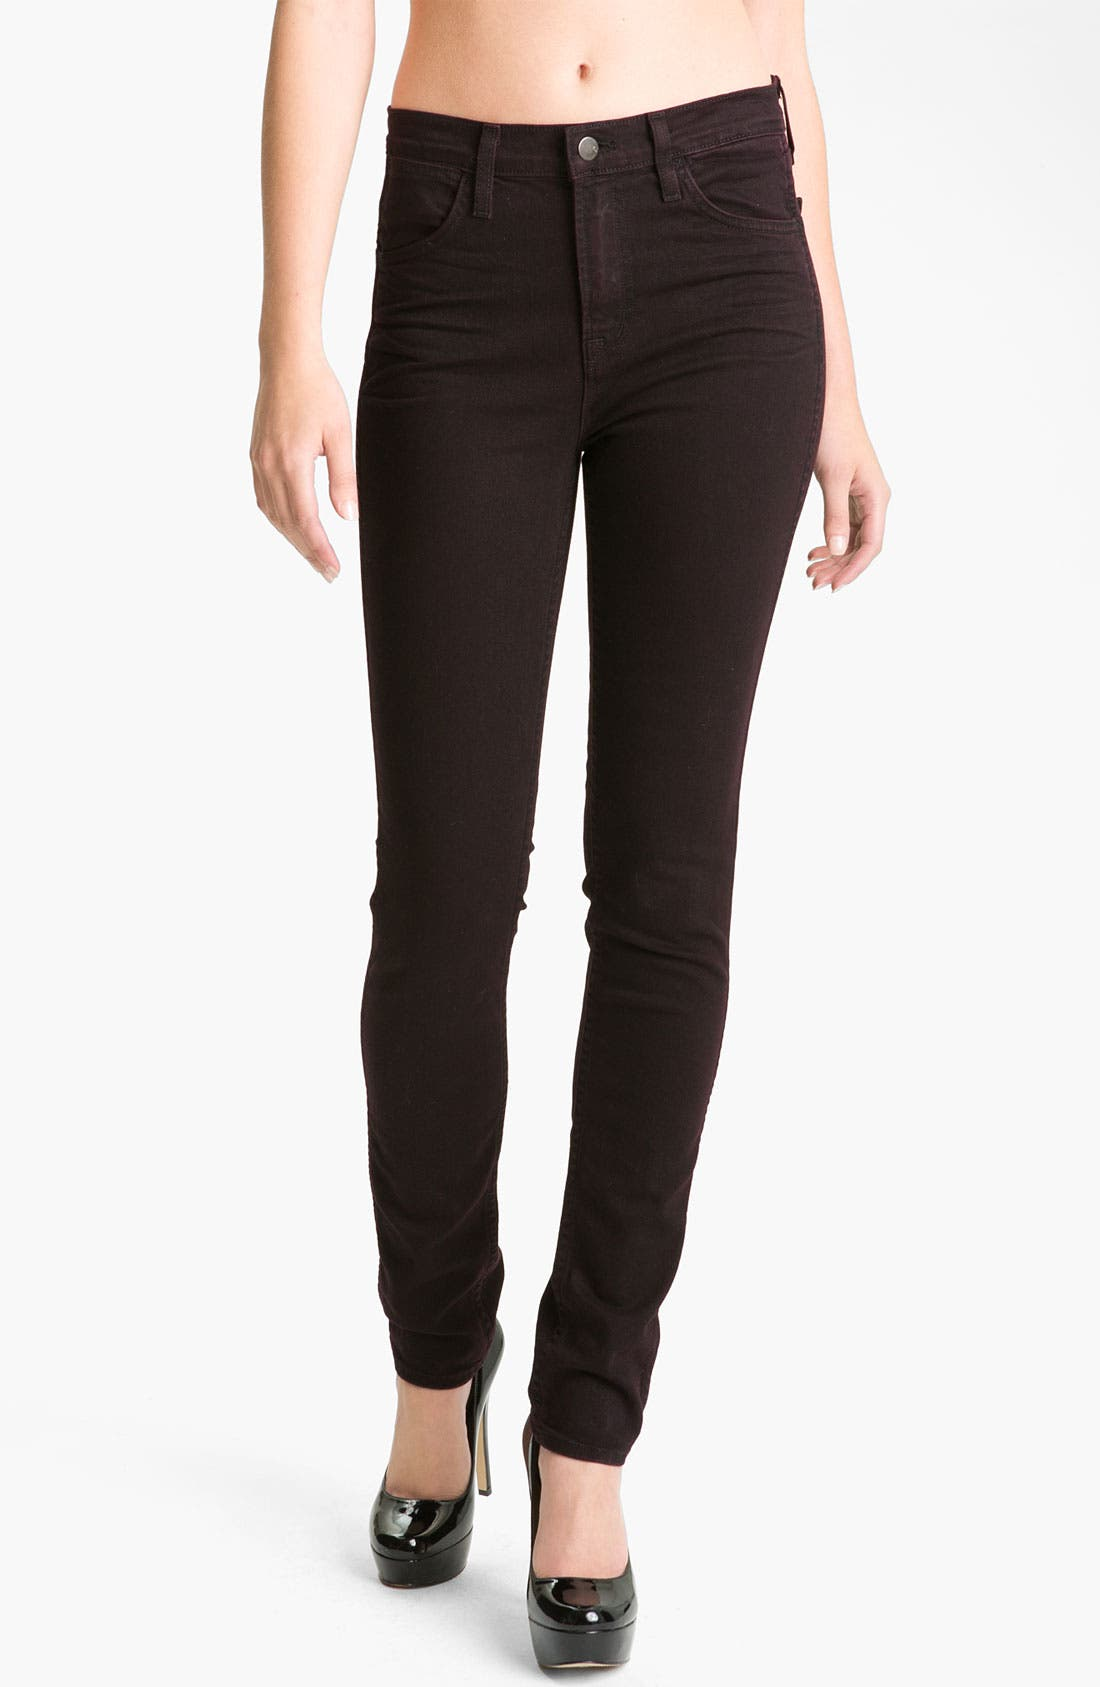 Alternate Image 1 Selected - J Brand 'Sasha' High Rise Skinny Jeans (Noir Red)